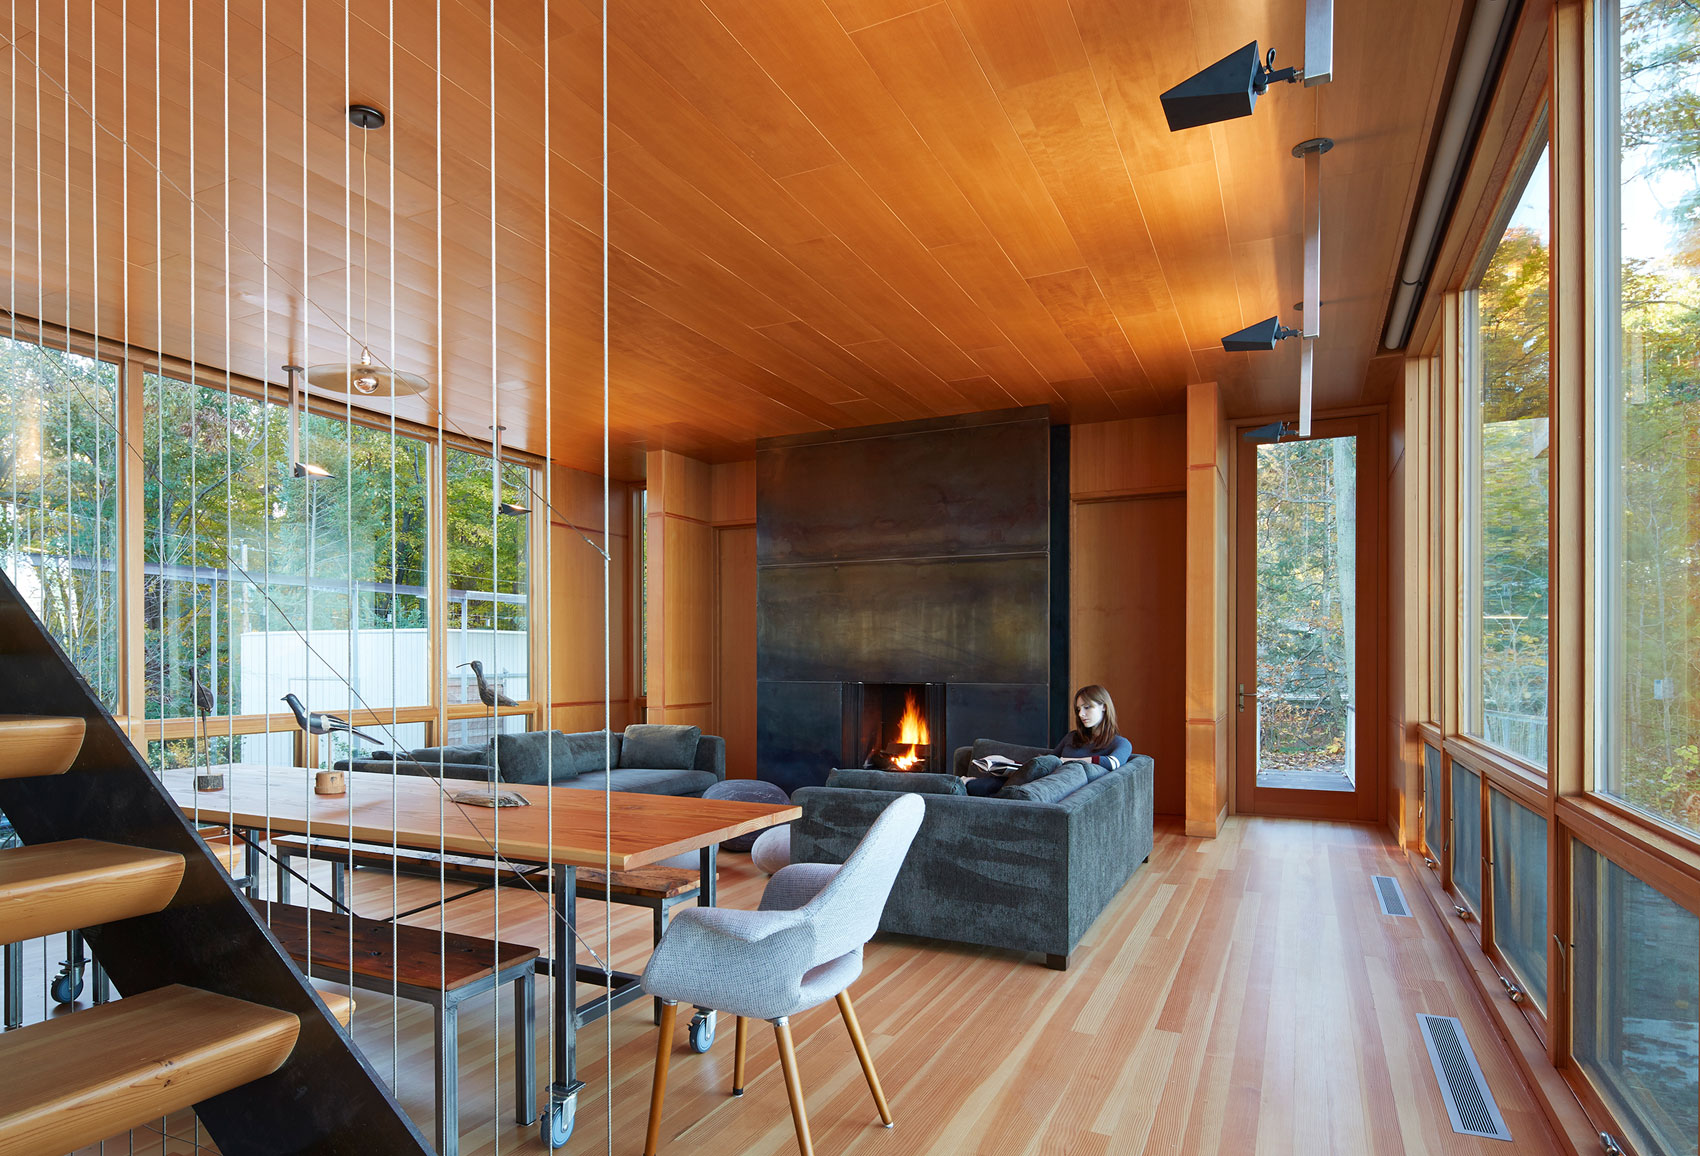 Tranquility and Simplicity Core Elements of Suns End Retreat in Harbert Michigan by Wheeler Kearns Architects-16